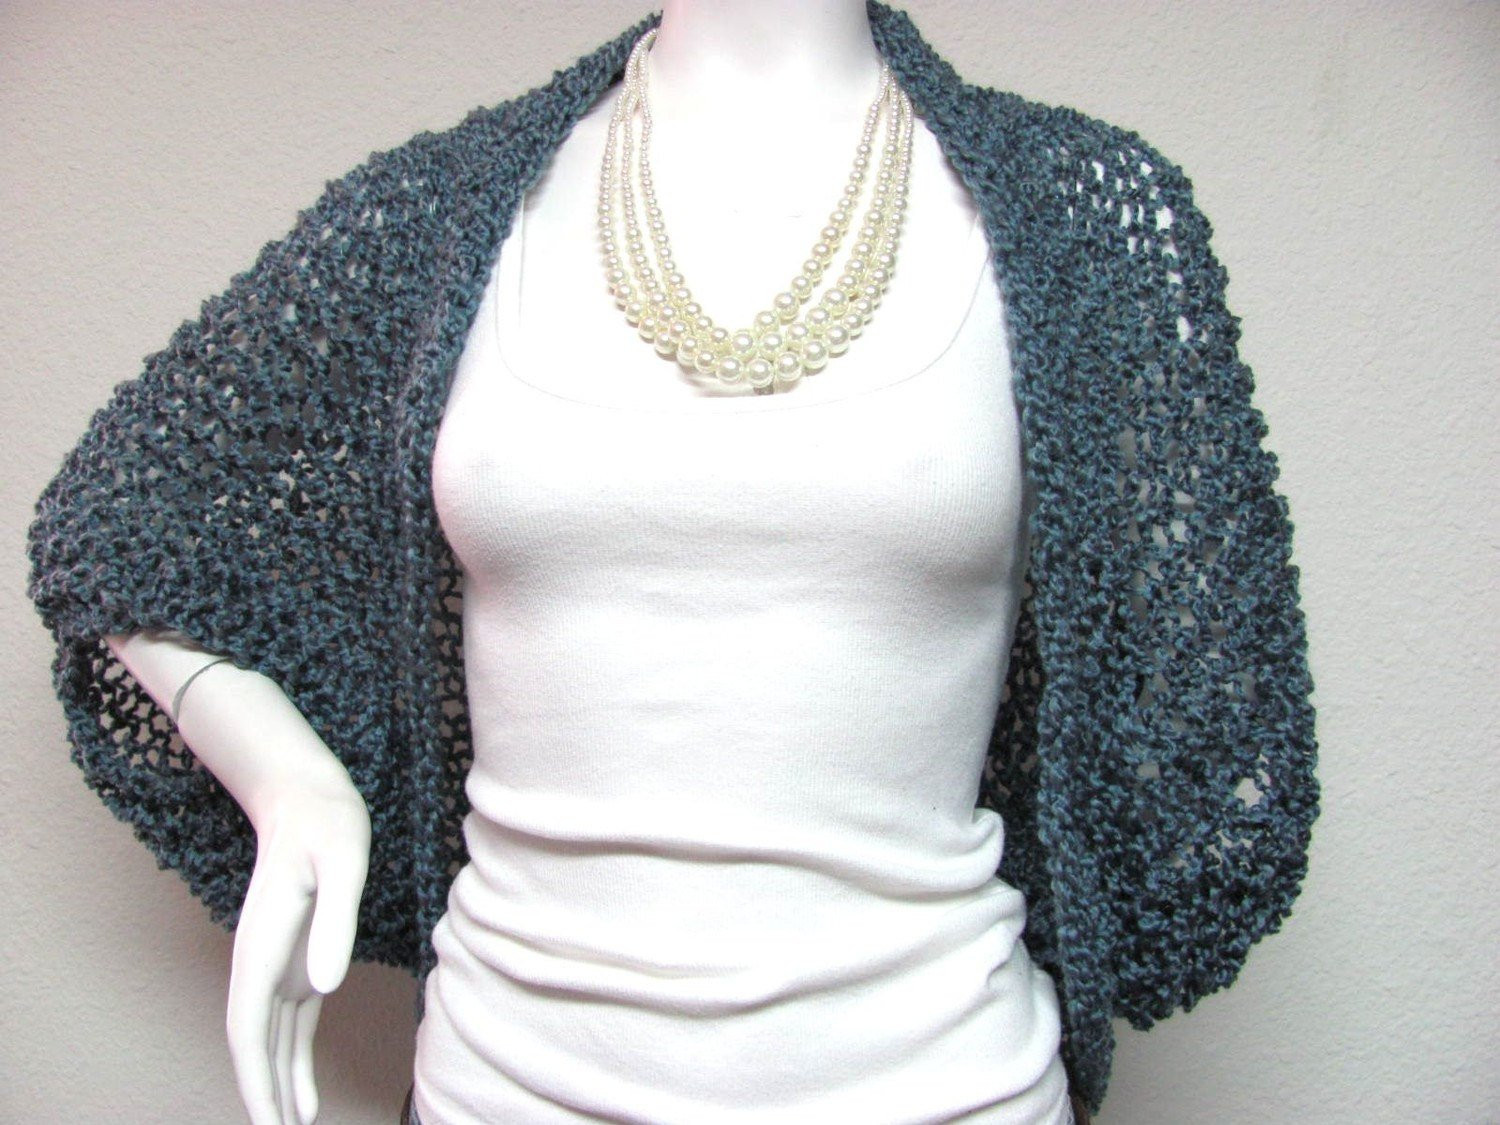 Plus Size Crochet Awesome Plus Size Crochet Shrug Of Gorgeous 50 Pictures Plus Size Crochet